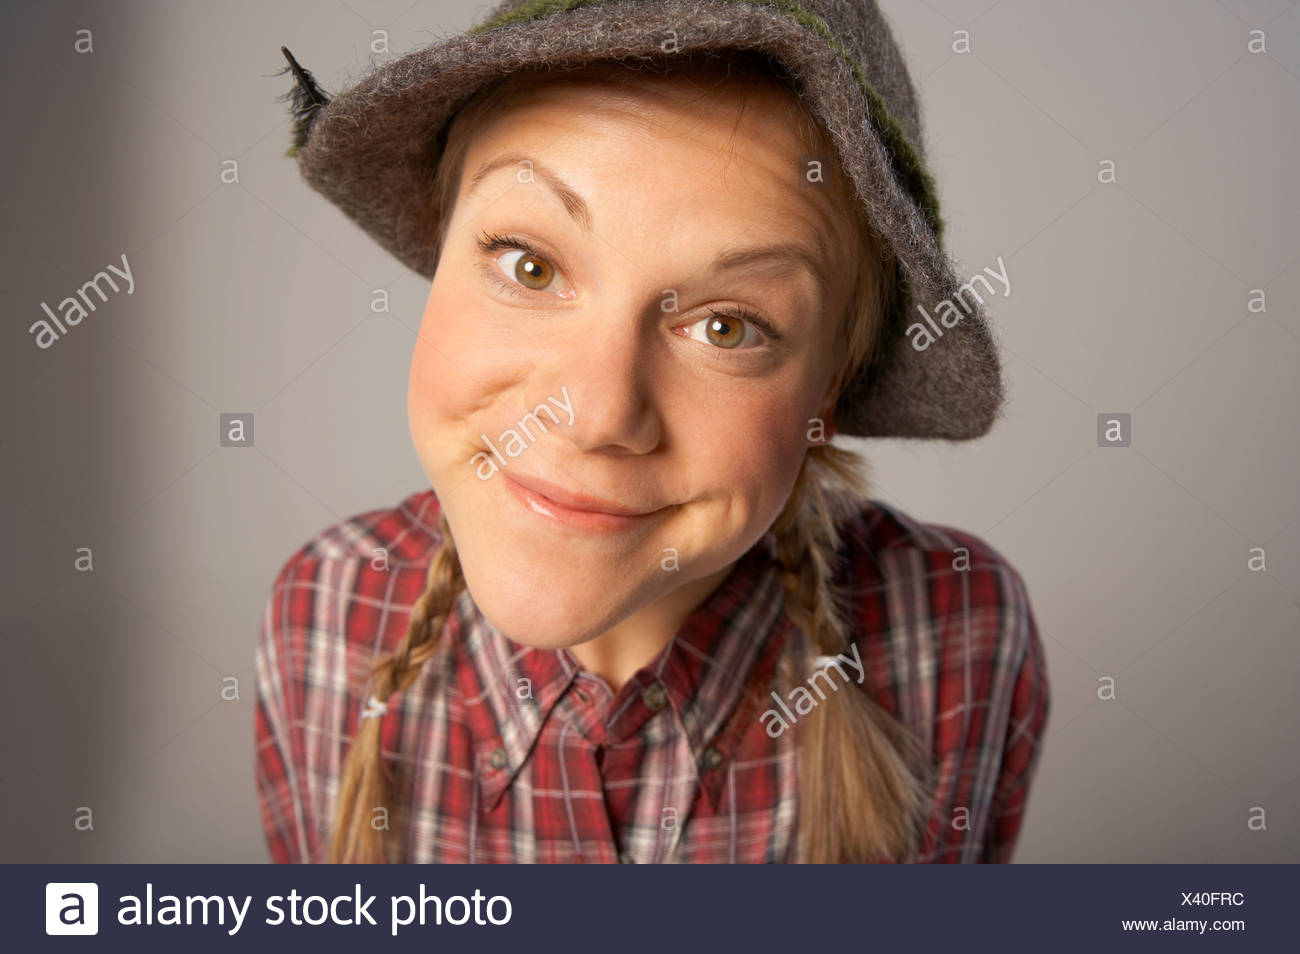 Portrait of a woman. - Stock Image